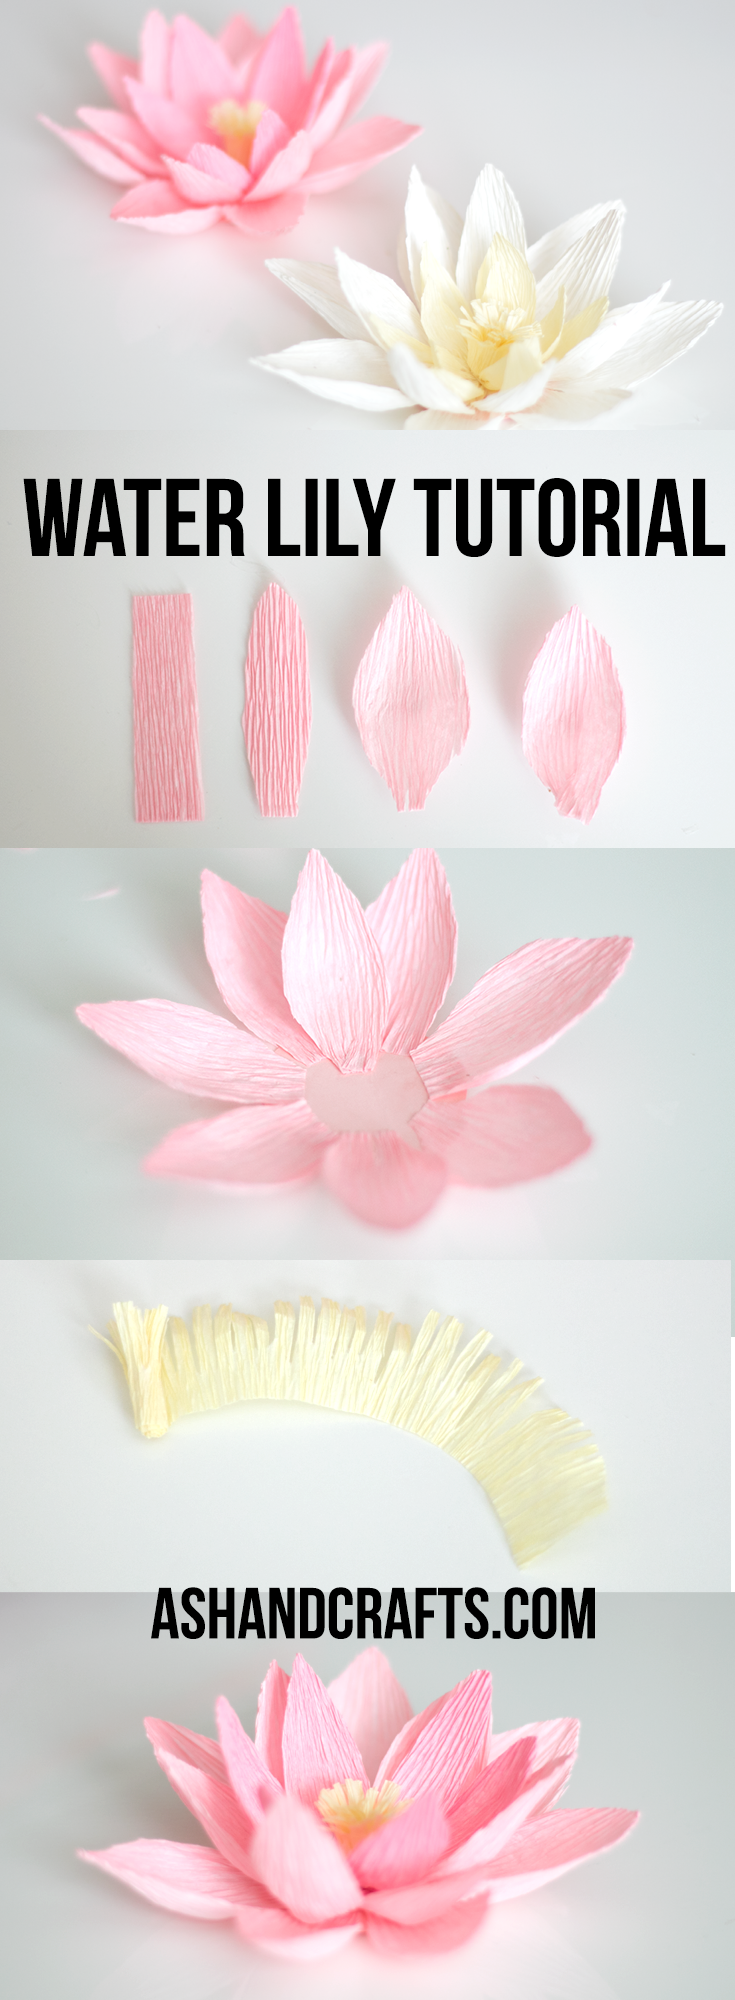 Crepe Paper Water Lily Paper Crafts Pinterest Crepe Paper